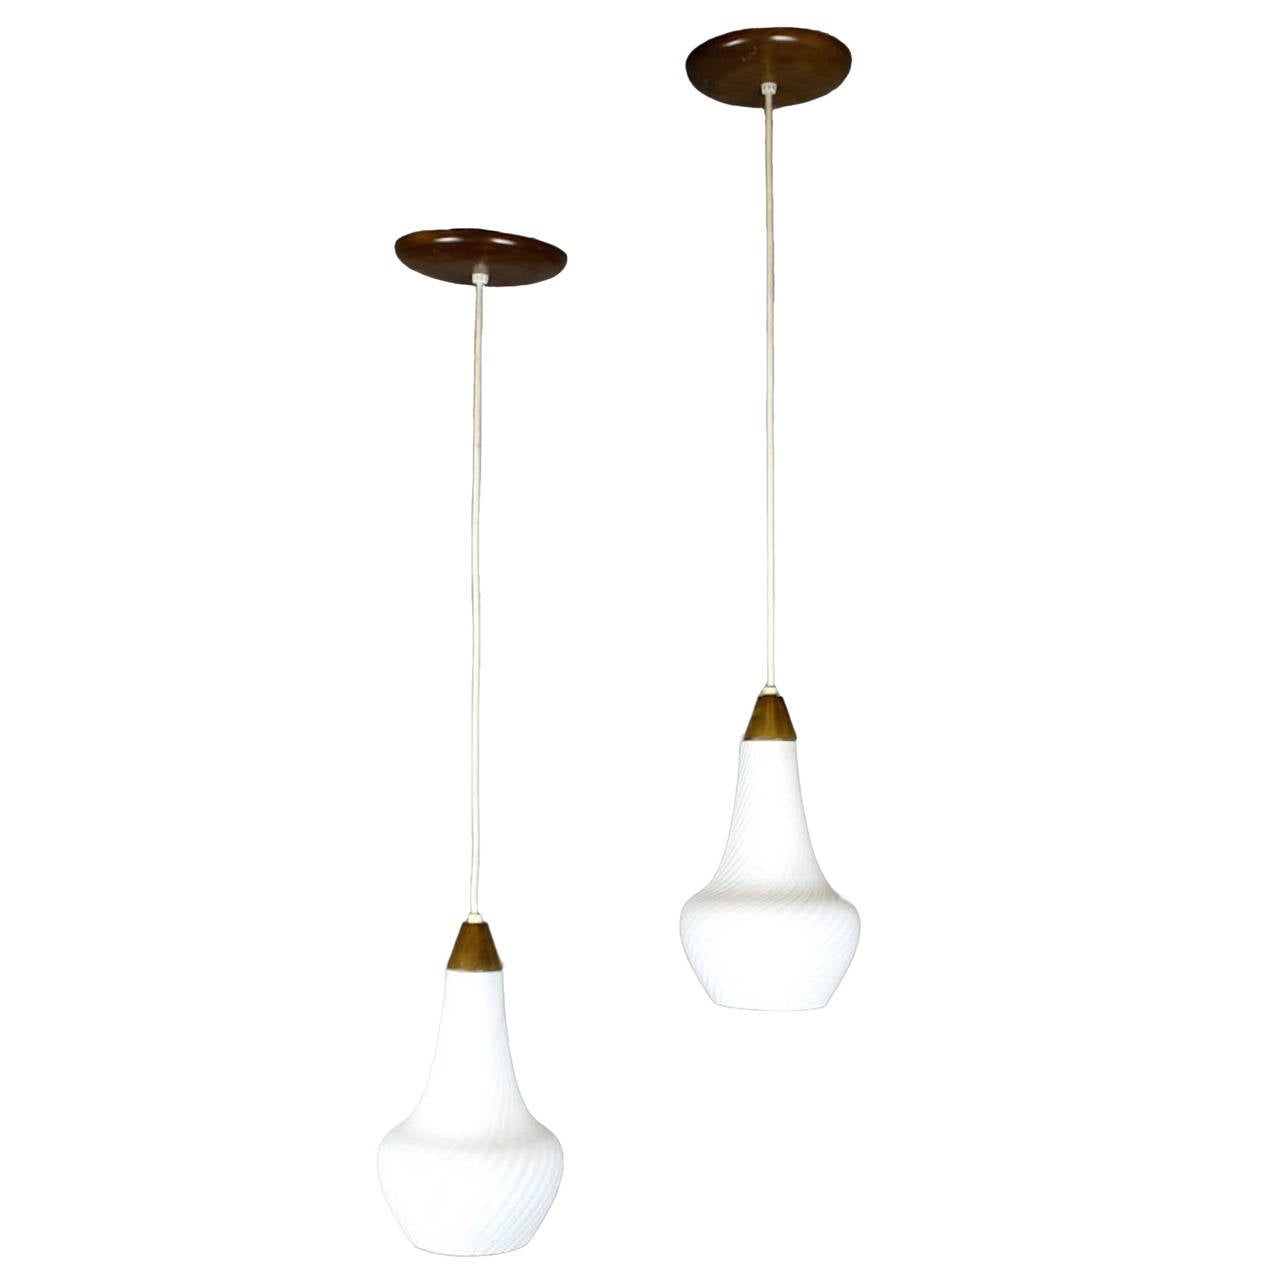 sc 1 st  1stDibs & Mid-Century Pendant Lights Two Available at 1stdibs azcodes.com